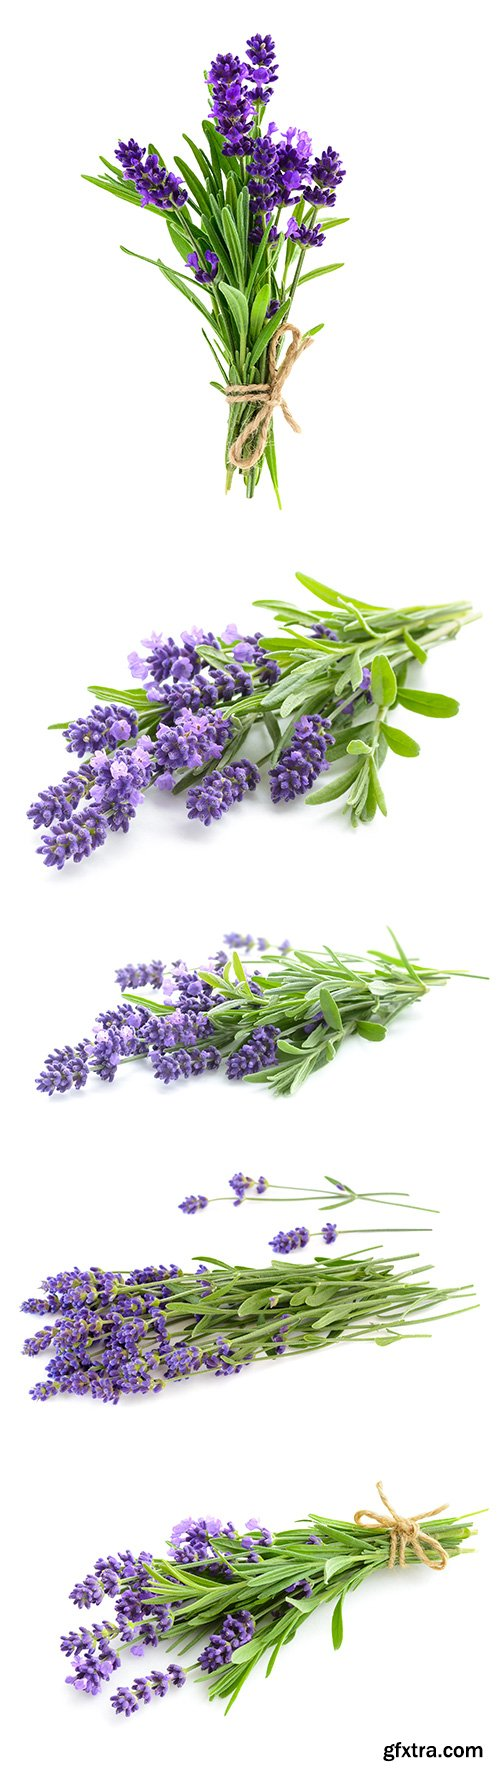 Lavender Isolated - 5xJPGs